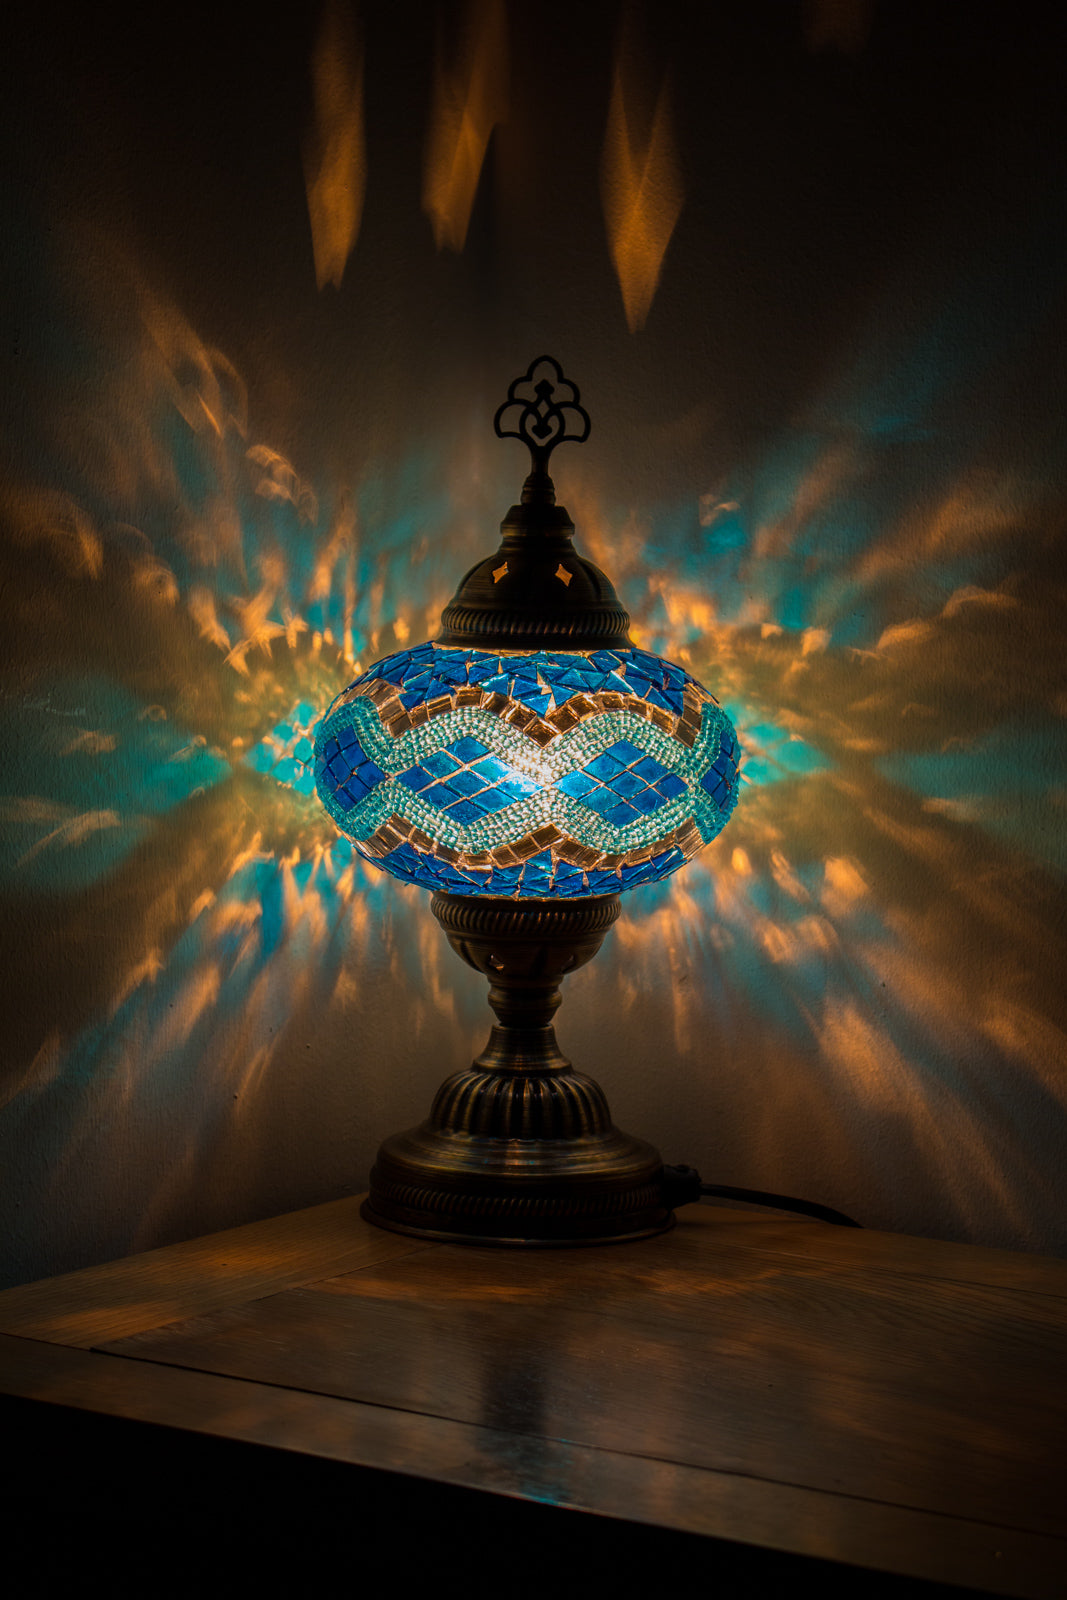 Hand Made Mosaic Table Lamp Size 3 in Turquoise Rug Design